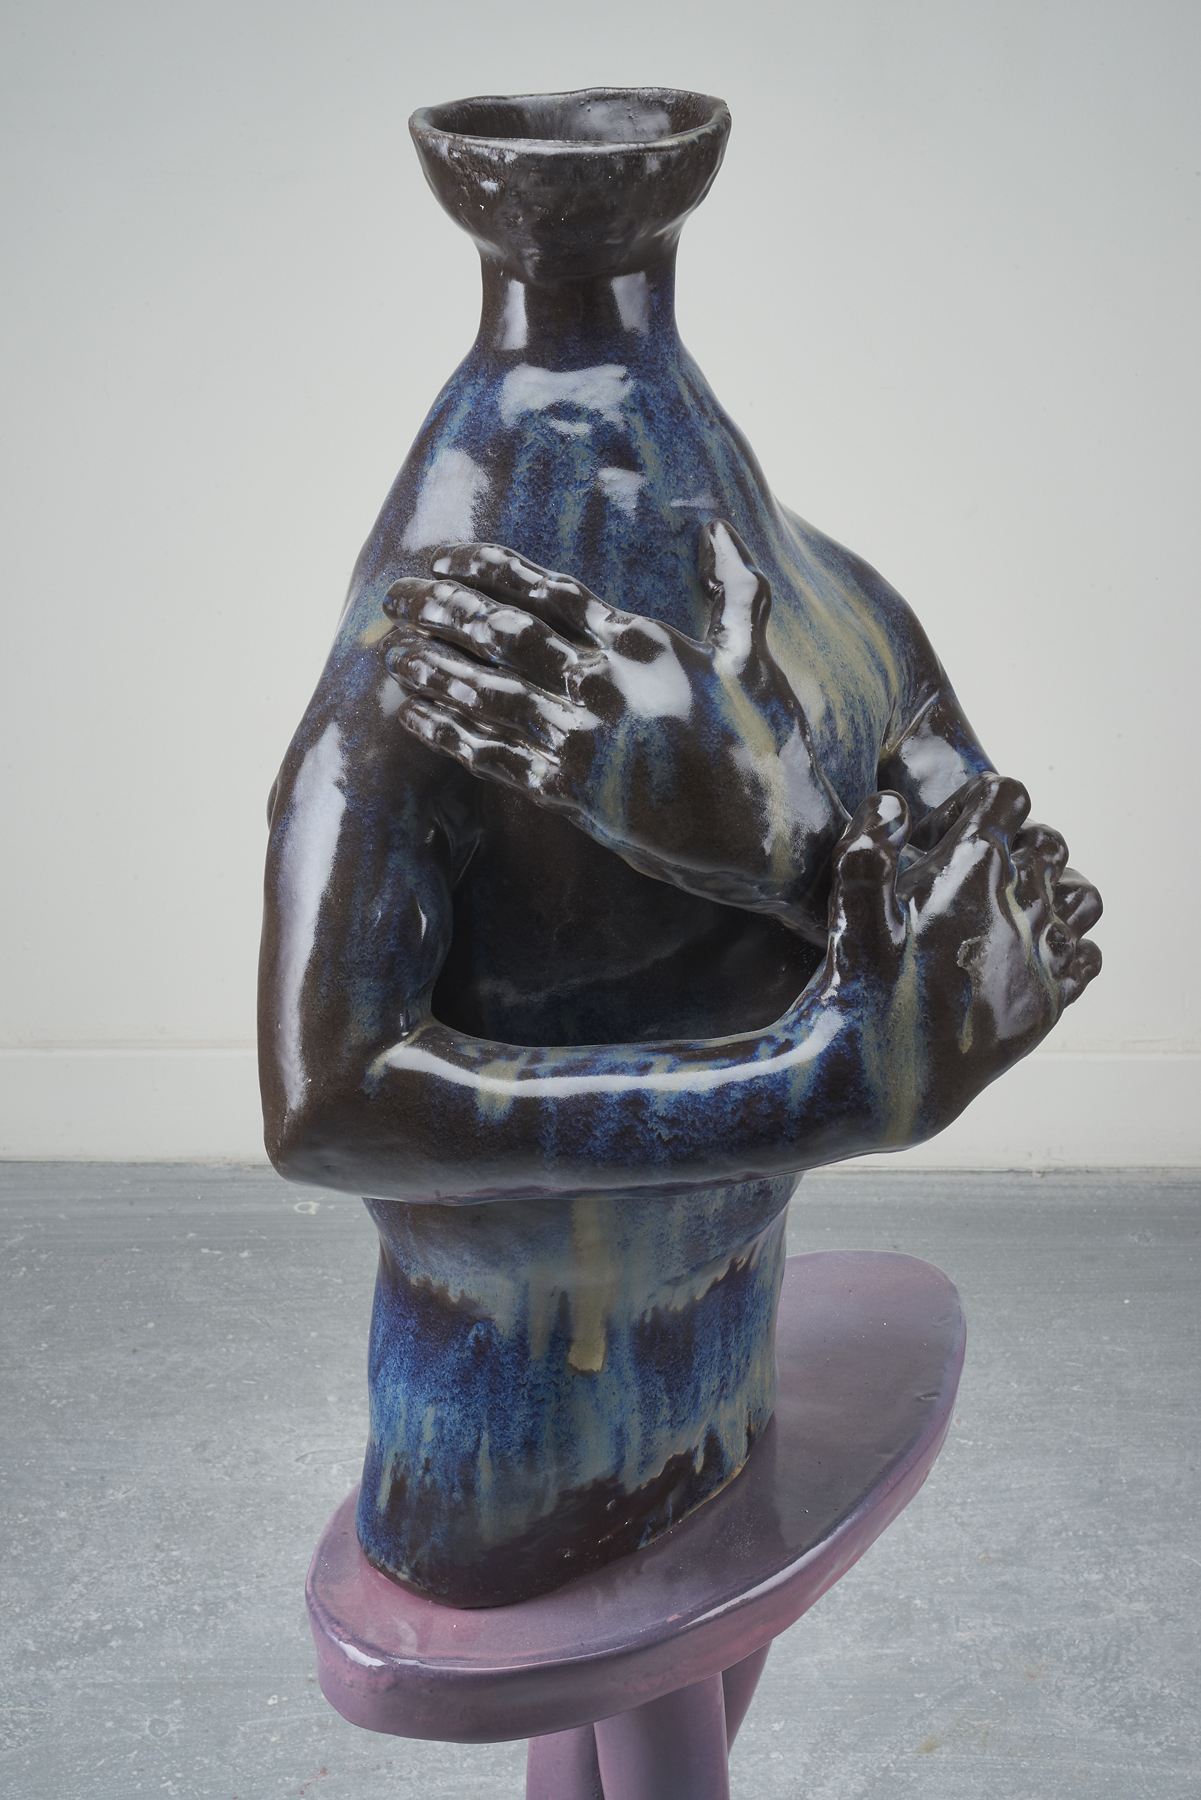 Woody De Othello,  Sometimes spending too much time alone leads to loneliness , 2018, Ceramic, glaze, 44 x 17 x 5 inches